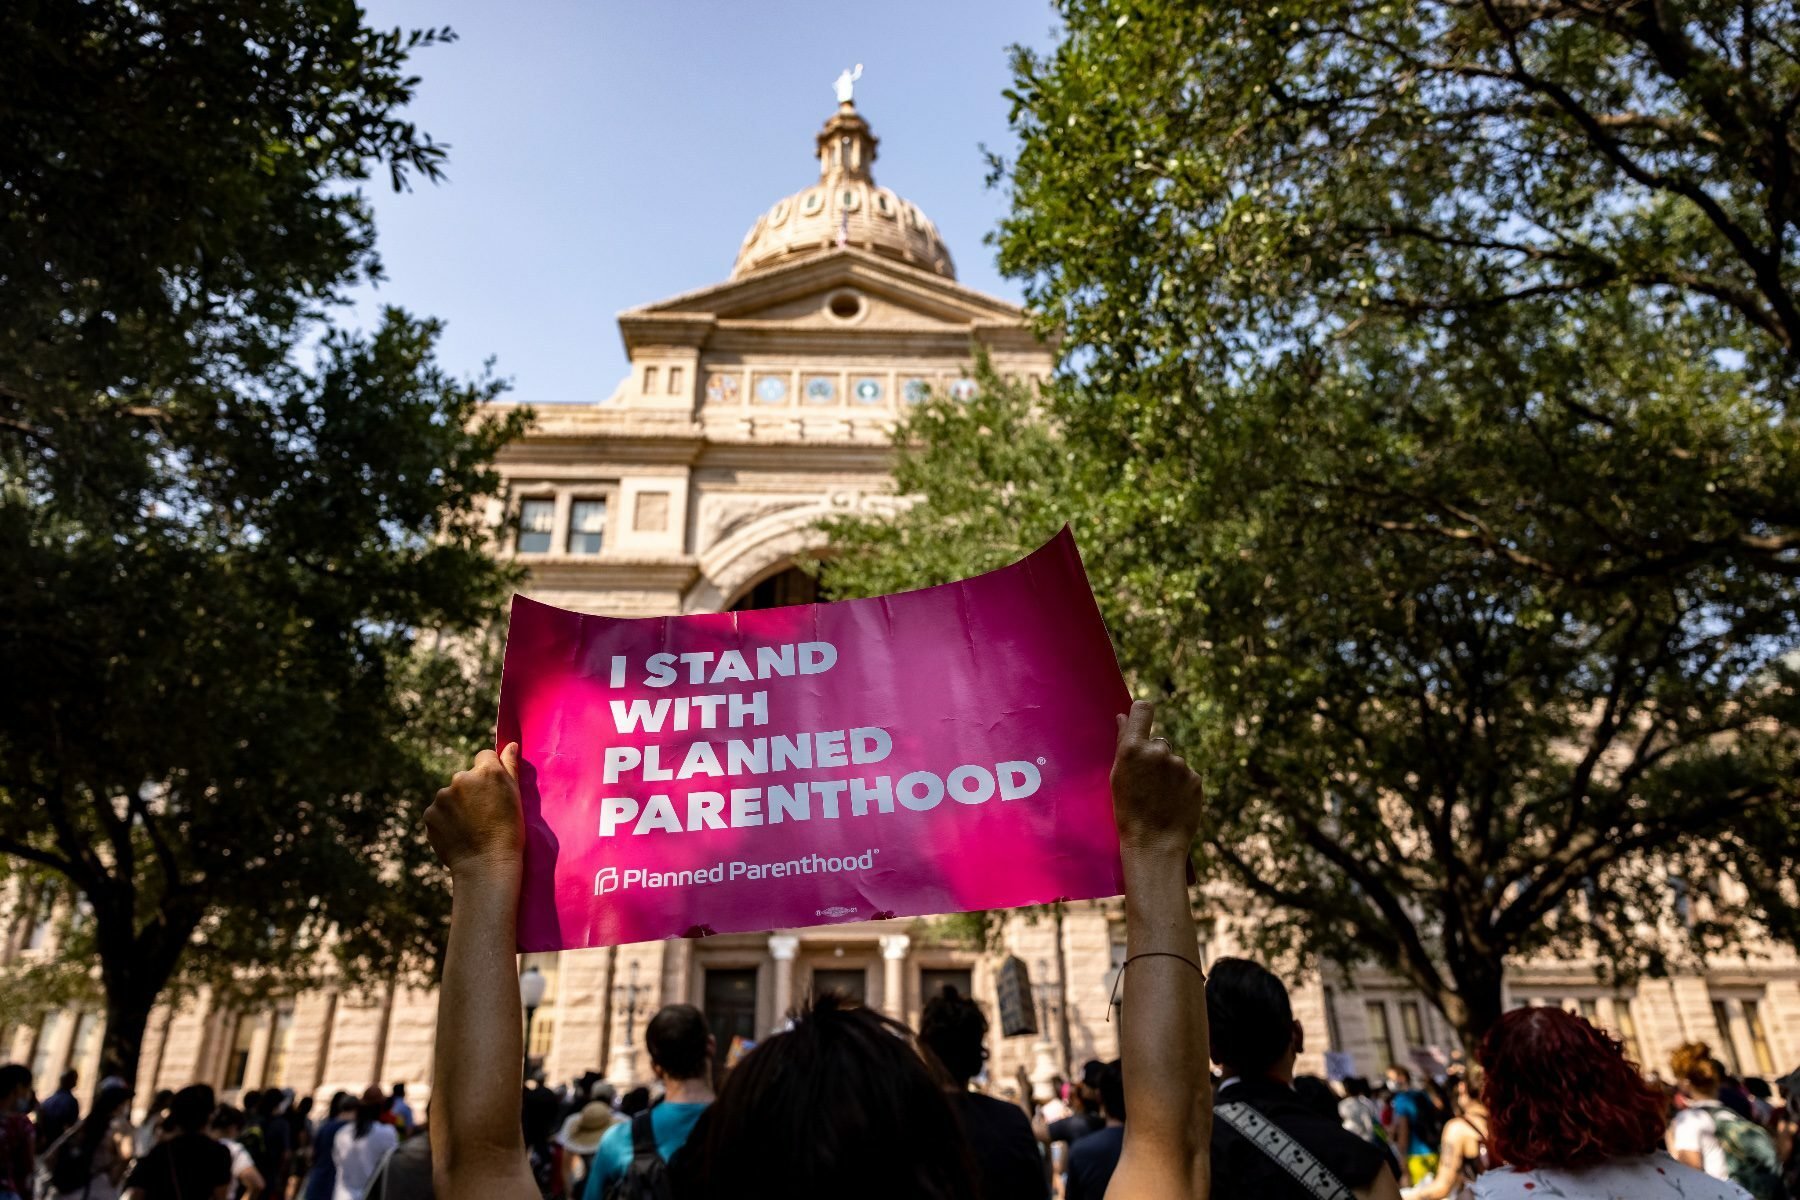 An abortion rights activist holds a sign in support of Planned Parenthood at a rally at the Texas State Capitol.